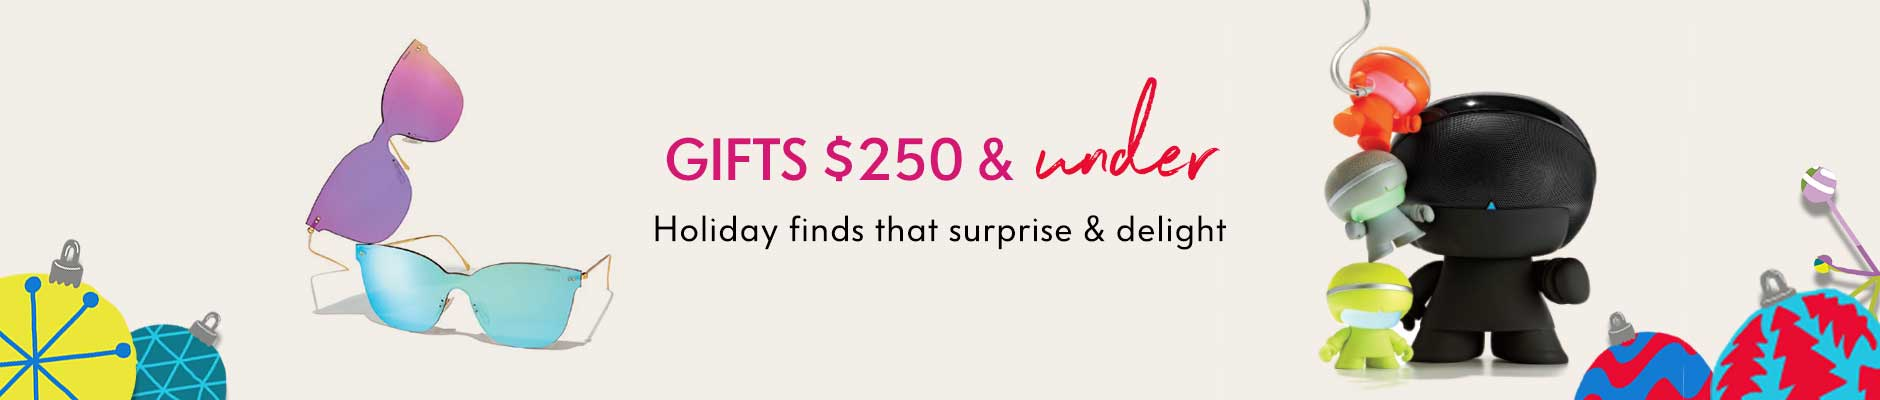 Gifts $250 & under - Holiday finds that surprise & delight